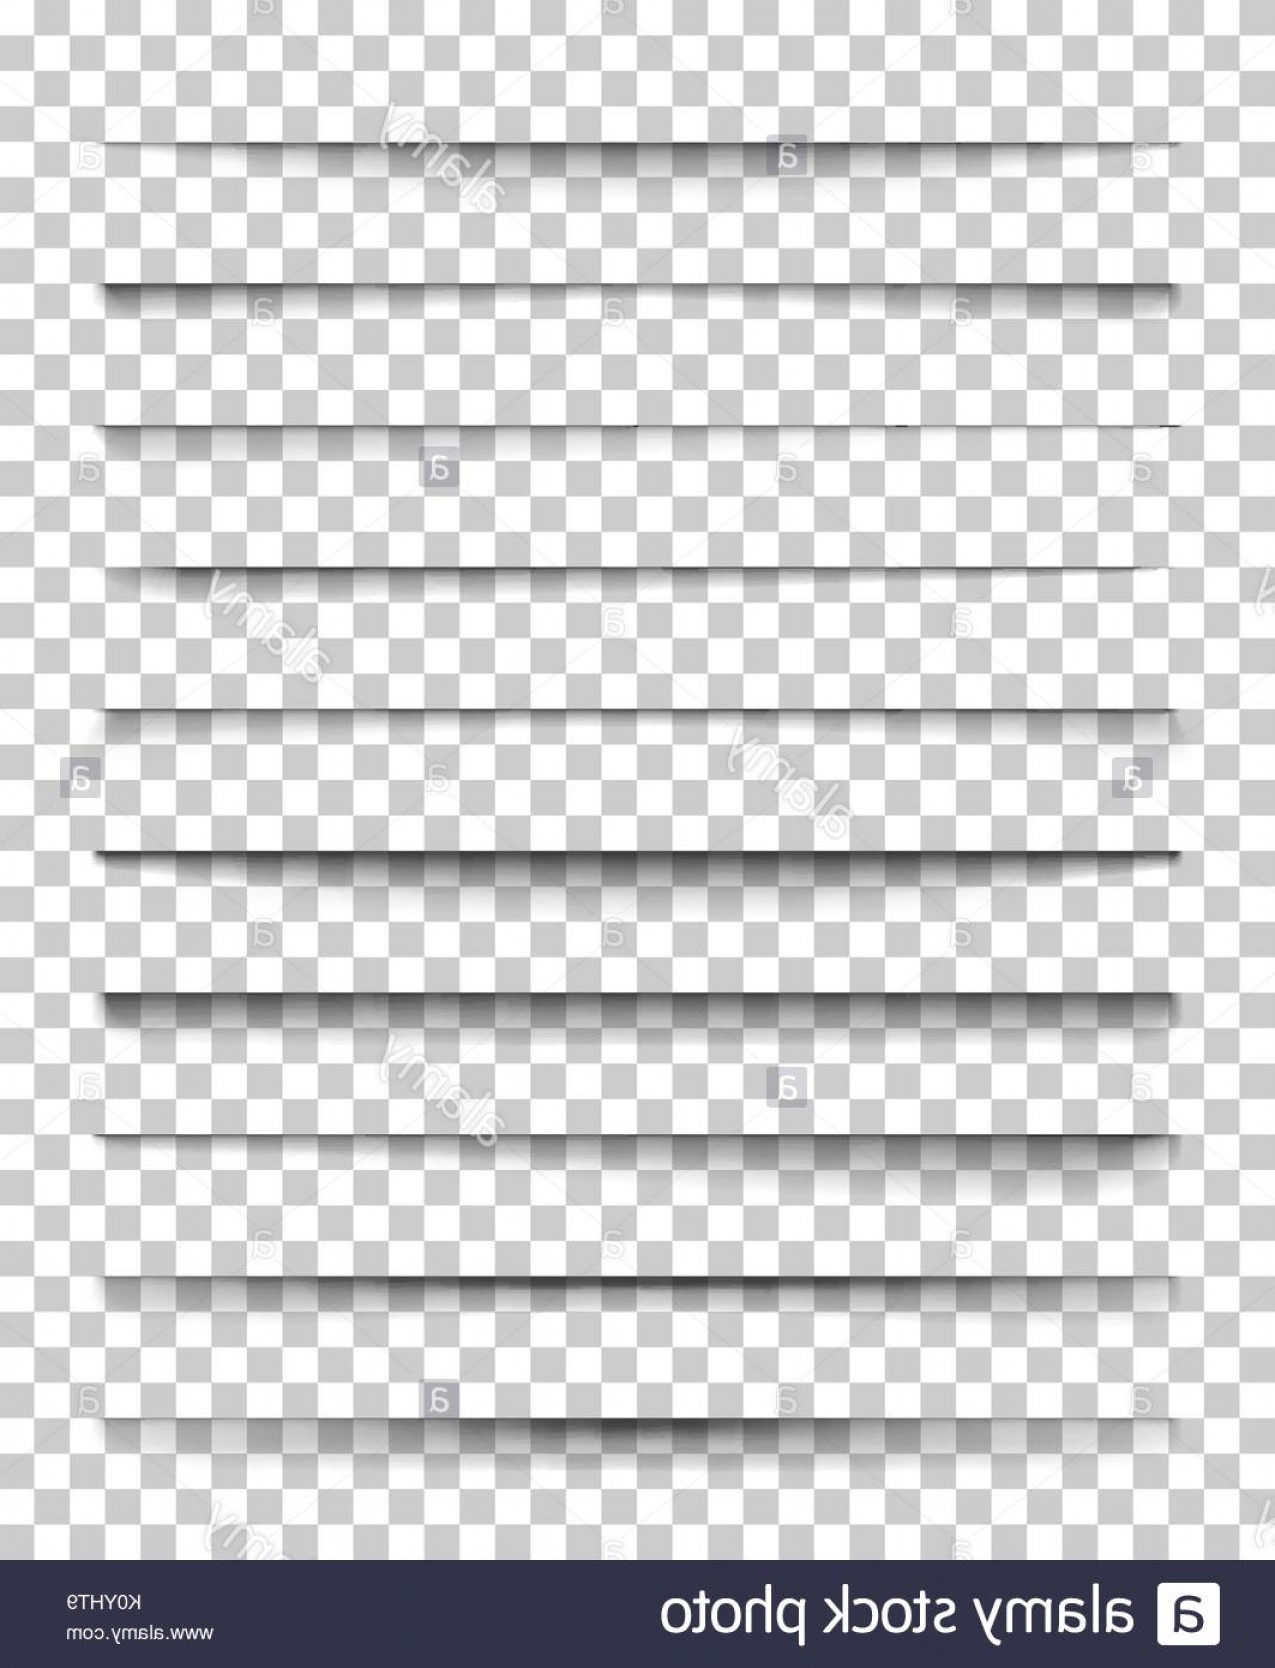 Vector Line Dividers Transparent Backgrounds: Page Divider With Transparent Shadows Set Of Pages Separation Vector Image